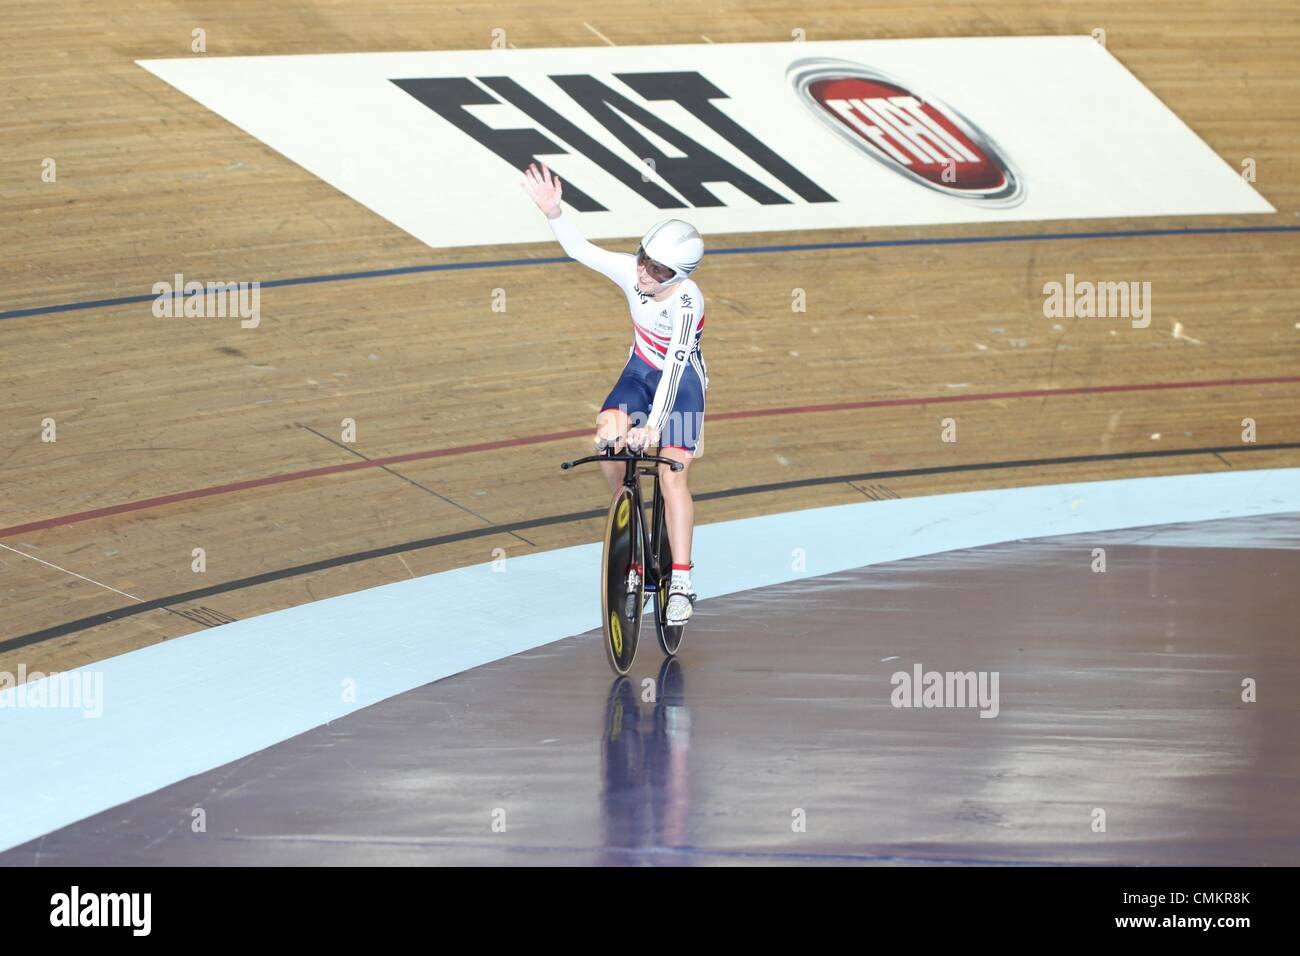 Track Cycling World Cup, National Cycling Centre, Manchester, UK. 3rd November 2013. Laura Trott acknowledges the - Stock Image